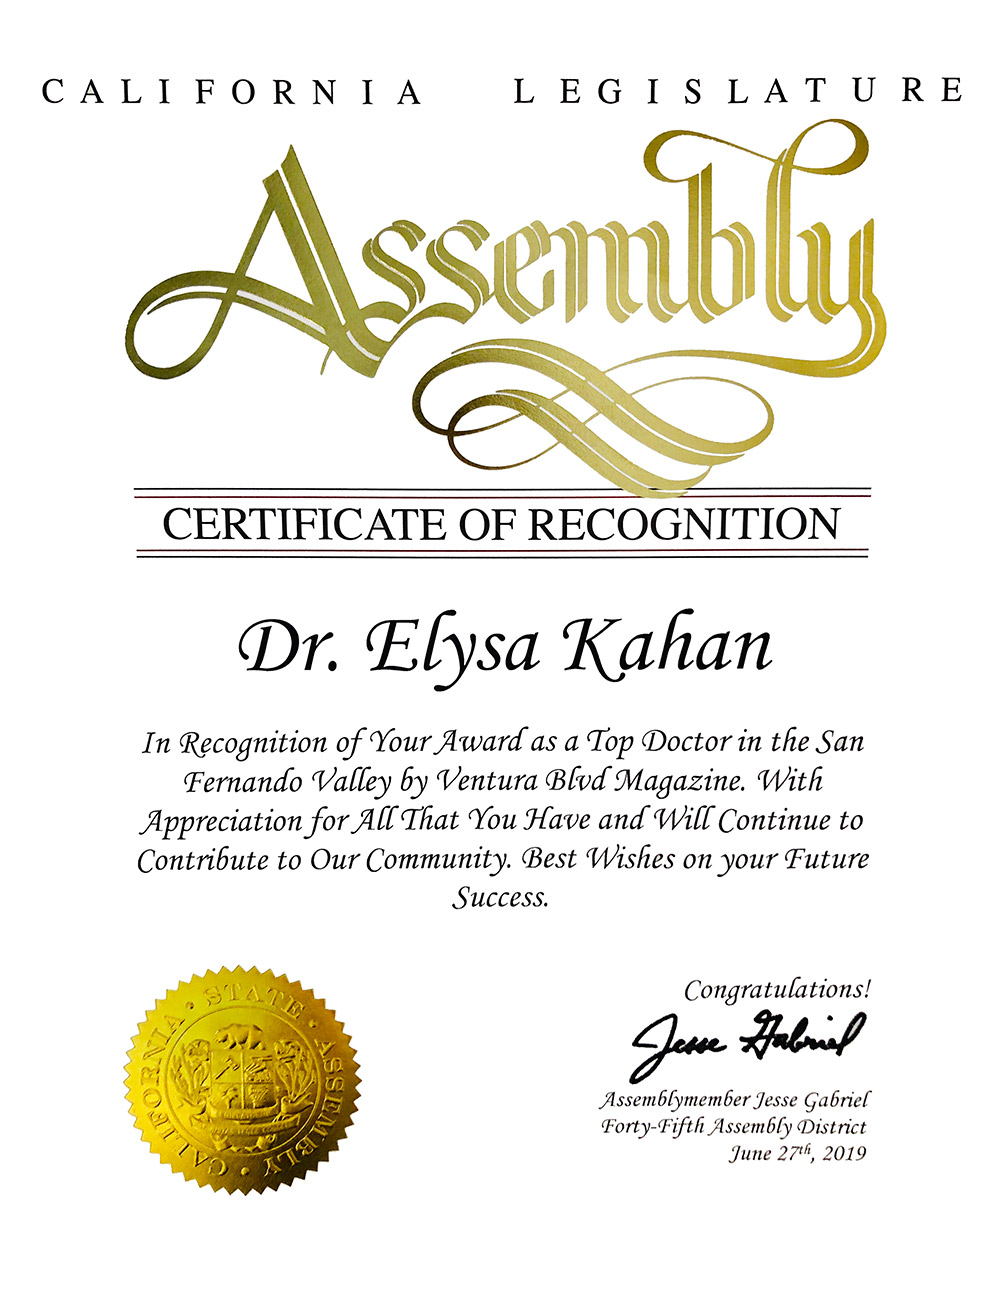 ca state assembly | kahan orthodontics